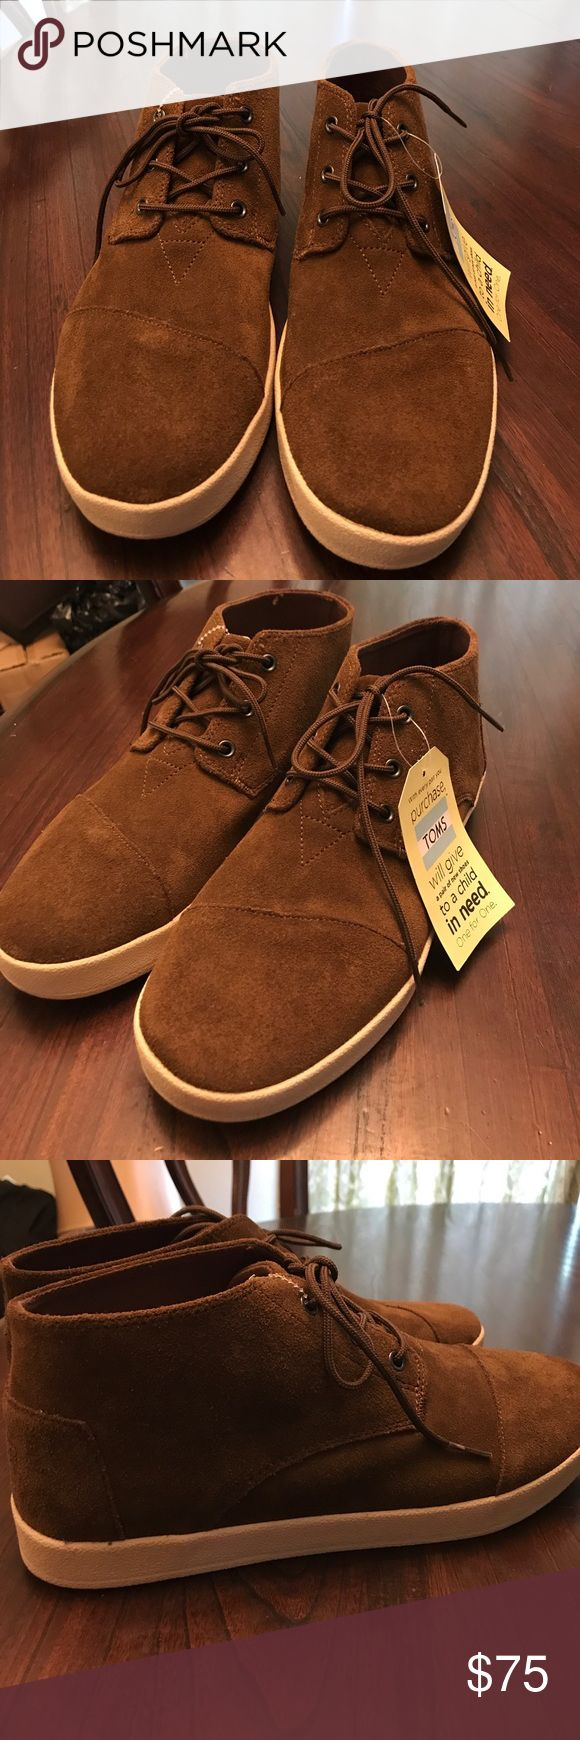 TOMS SZ 11 PASEO MID SUEDE BROWN lace up 🎓⭐️🎓🎓COLLEGE FUNDRAISER 🎓⭐️🎓🎓TOMS SZ 11 PASEO MID TOP BROWN SUEDE lace up-THANKS FOR YOUR SUPPORT---PLEASE NOTE THESE ARE NEW WITH OUT ORIGINAL BOX---THESE ARE NEW WITH TOM TAG ATTACHED AND PLASTIC ZIP TIE --NOTE BRAND NEW NEVER USED TOMS Shoes Chukka Boots